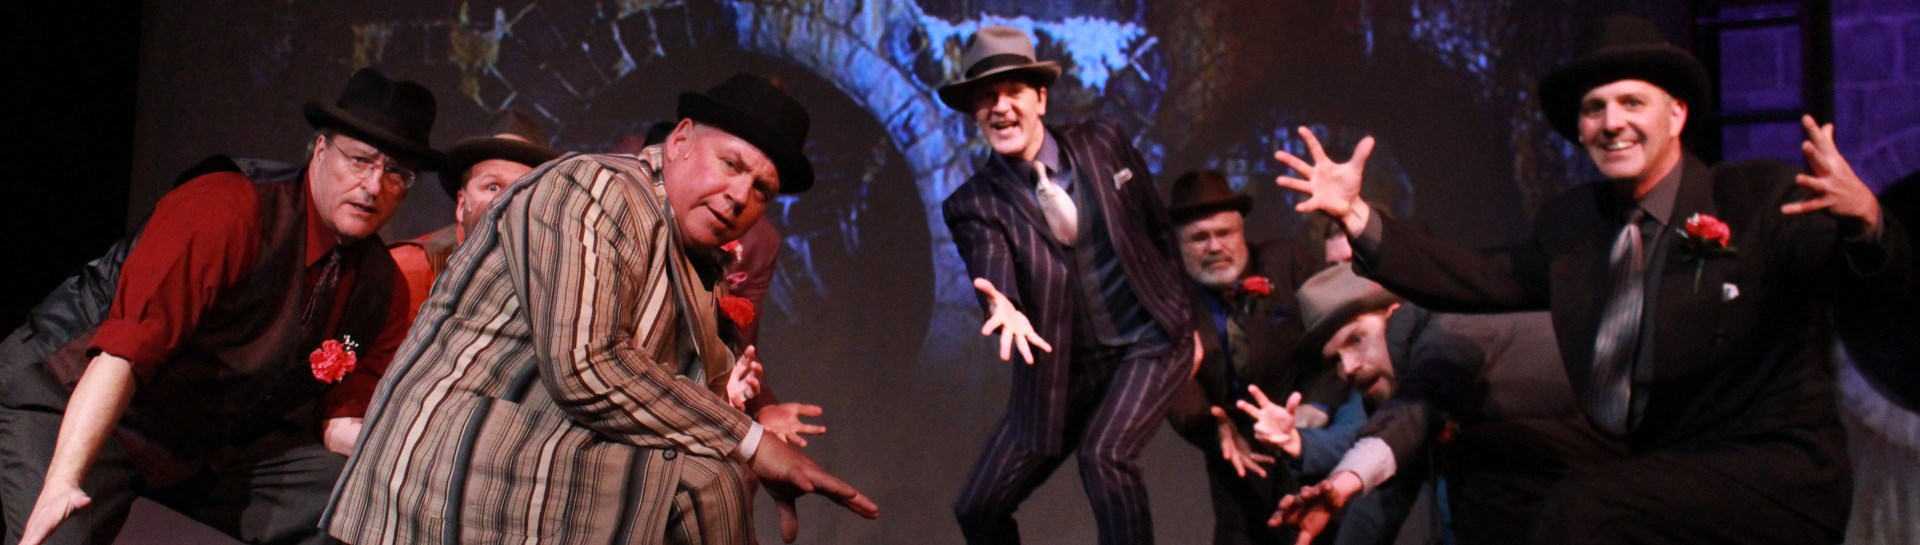 Group of male theatre actors in full costume on stage for performance of Guys and Dolls